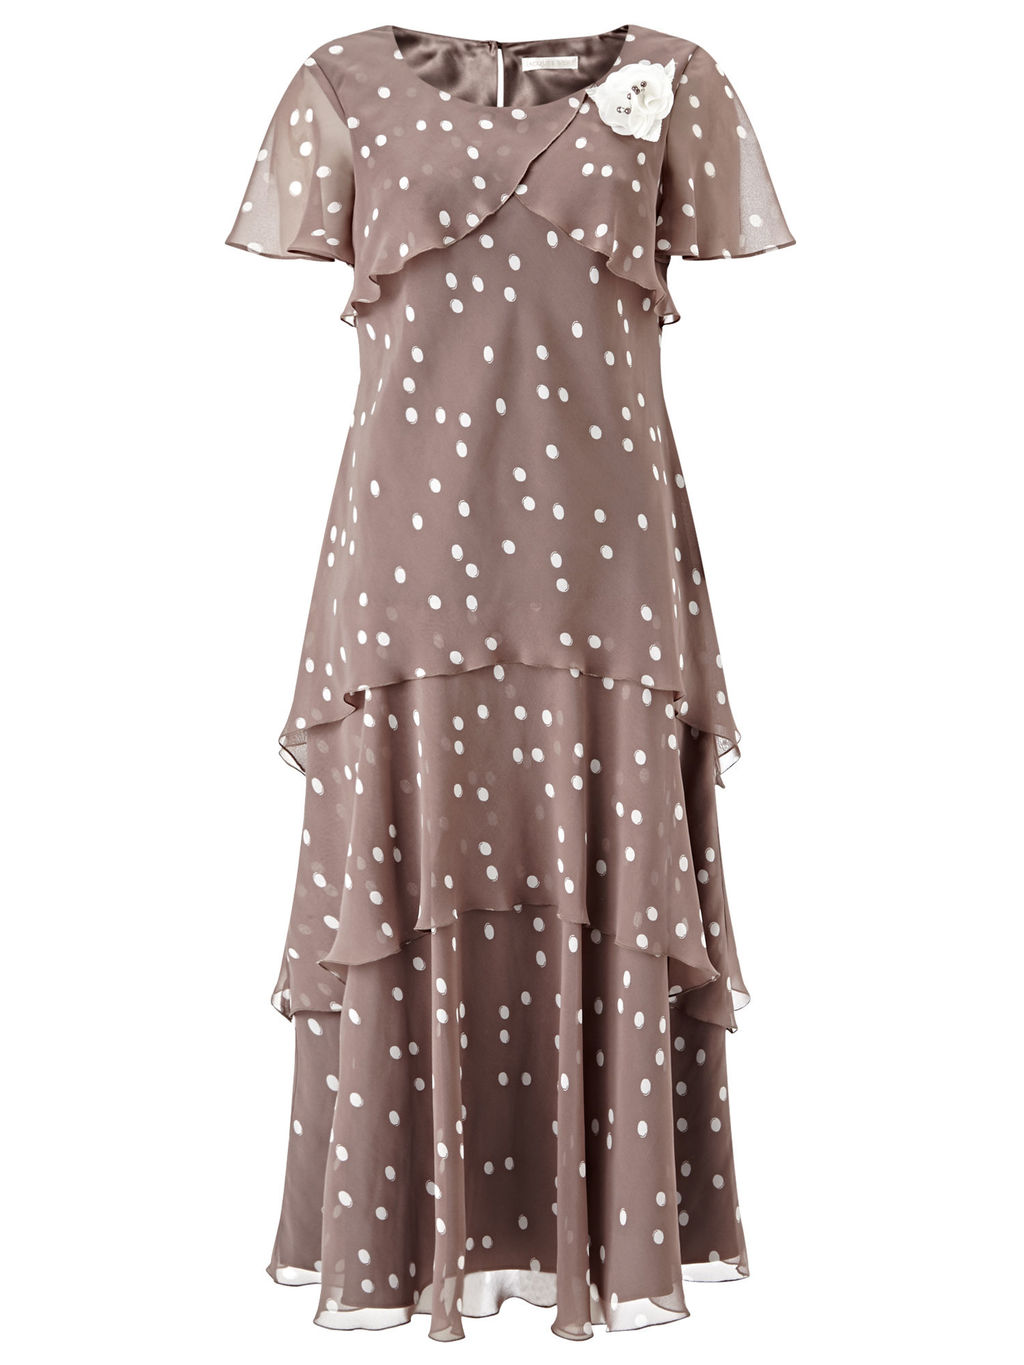 Brushstroke Spot Dress - style: a-line; length: calf length; neckline: round neck; sleeve style: angel/waterfall; pattern: polka dot; secondary colour: ivory/cream; predominant colour: taupe; fit: soft a-line; fibres: polyester/polyamide - 100%; occasions: occasion; hip detail: adds bulk at the hips; sleeve length: short sleeve; texture group: sheer fabrics/chiffon/organza etc.; bust detail: bulky details at bust; pattern type: fabric; pattern size: standard; embellishment: corsage; season: s/s 2016; wardrobe: event